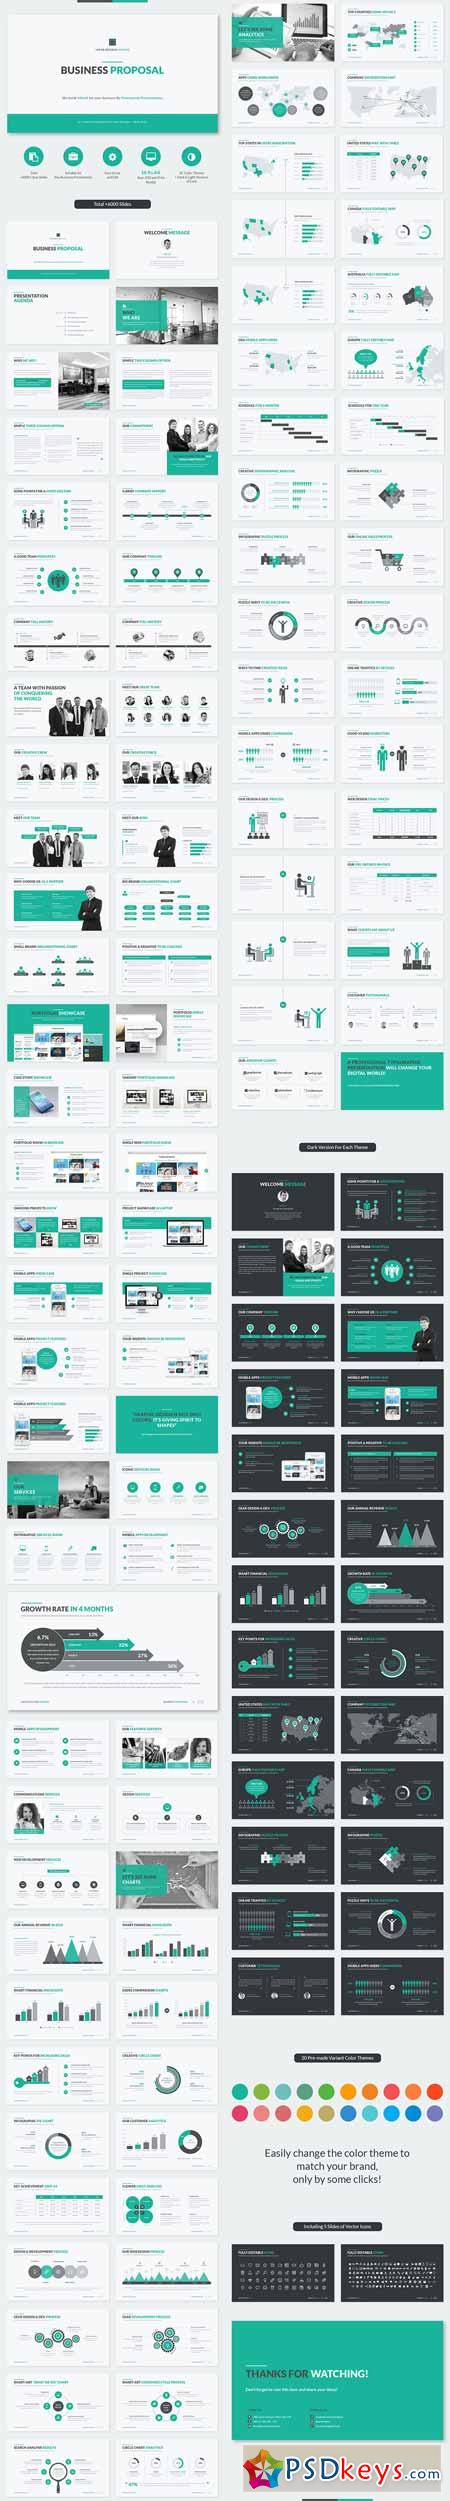 Business proposal powerpoint template 11833931 free download business proposal powerpoint template 11833931 friedricerecipe